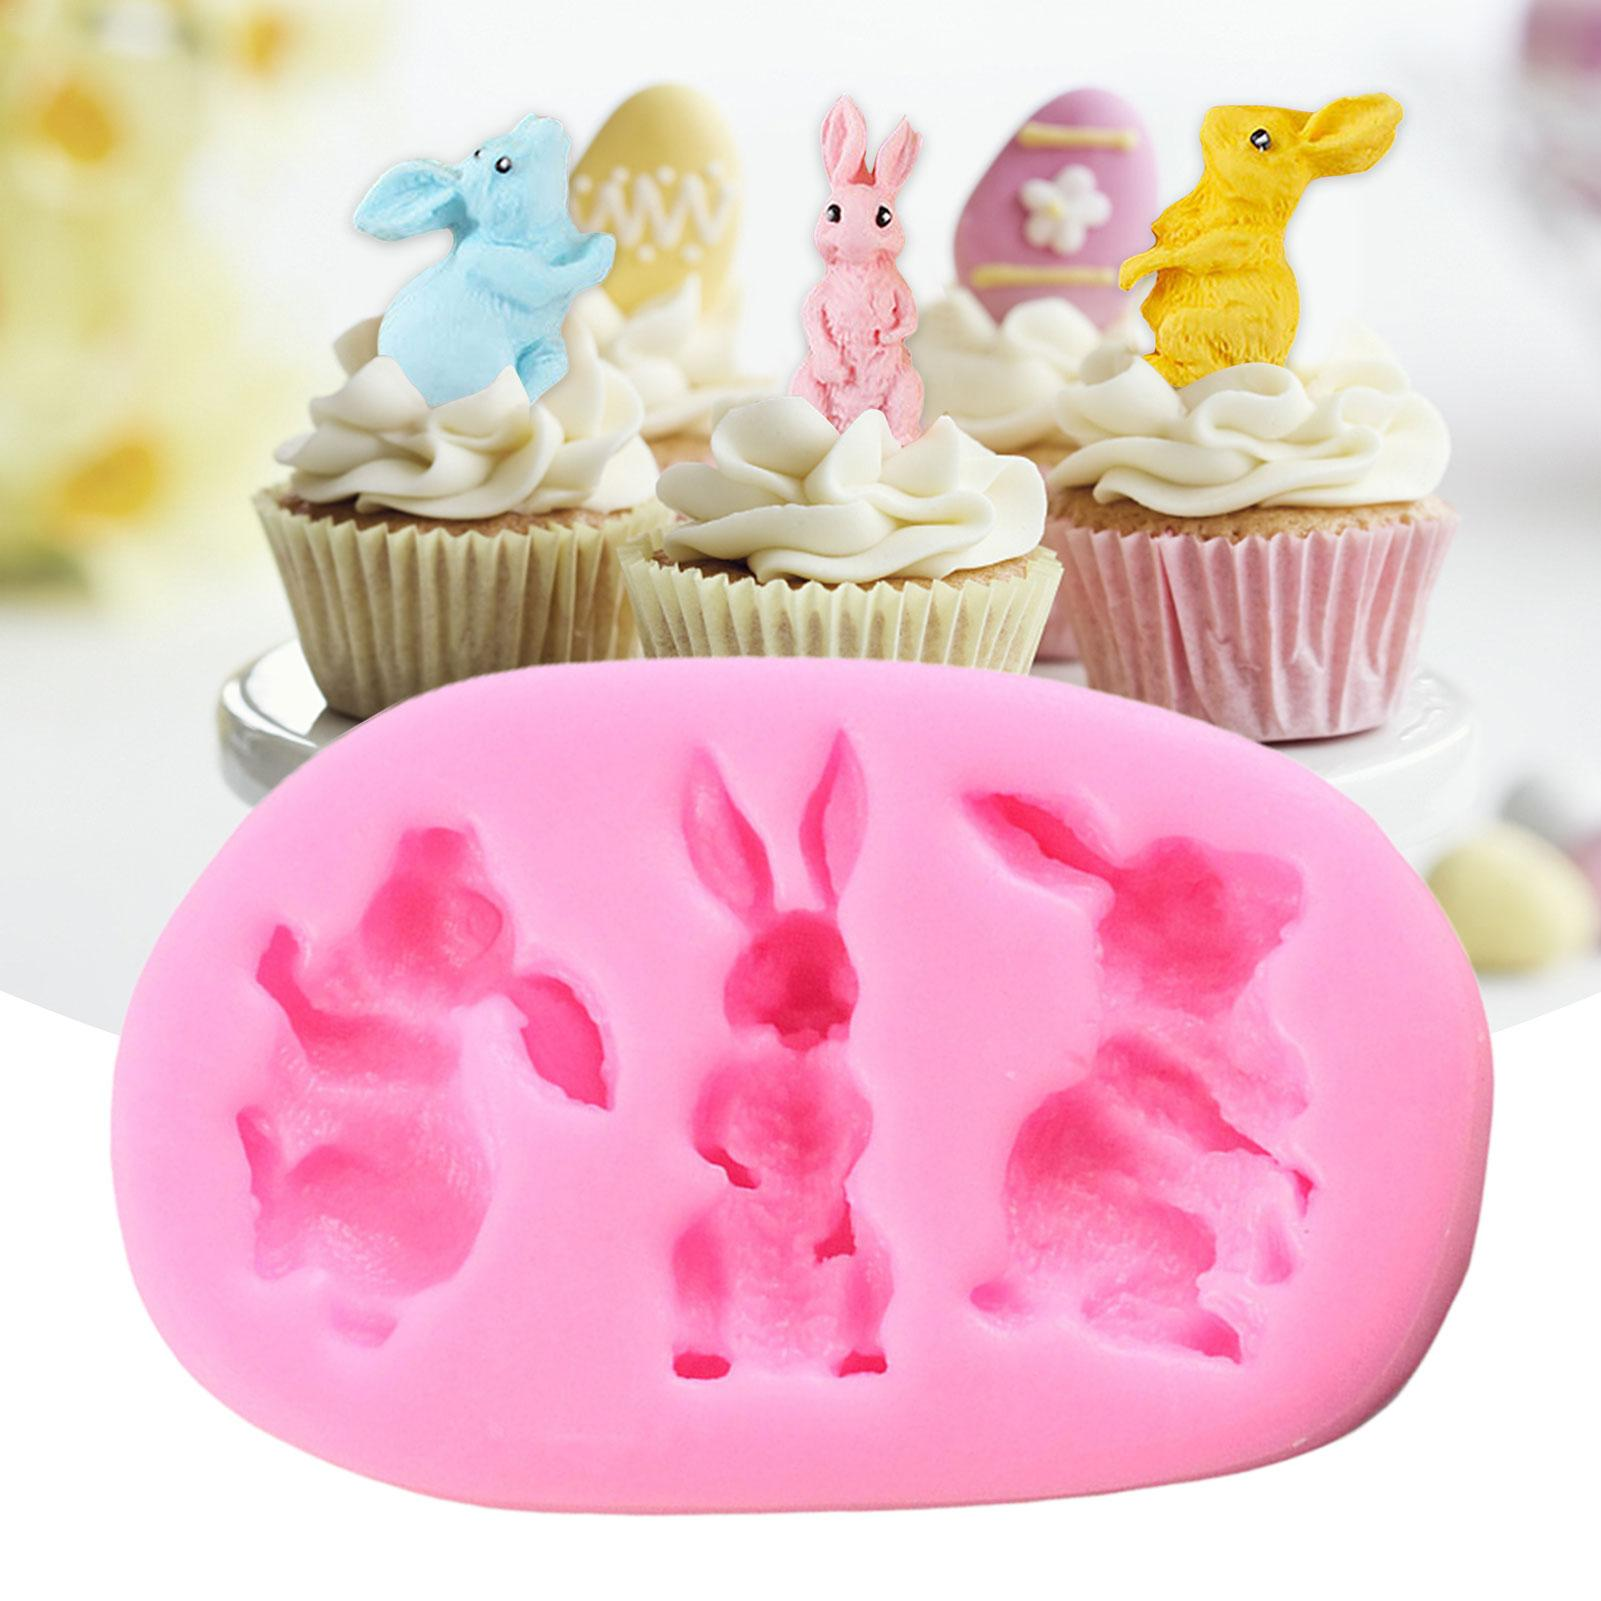 Details about  /Easter bunny with dress and 2 baby bunnies lollipop chocolate candy molds